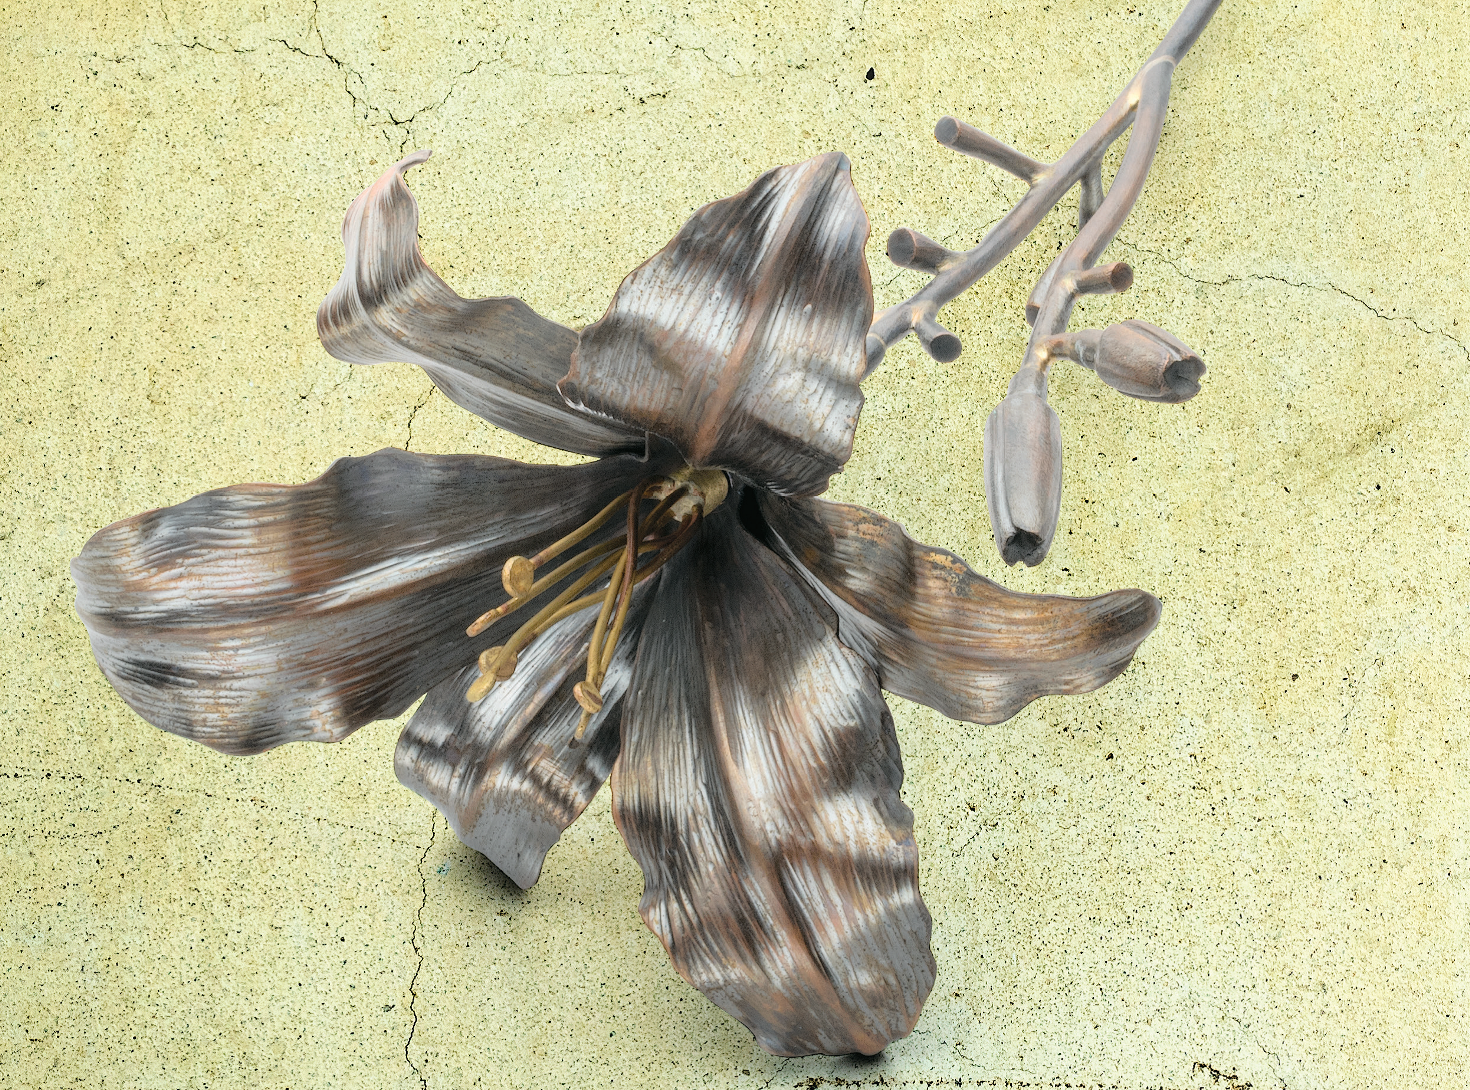 Published in Lapidary Journal Jewelry Artist March/April 2018, Brad Nichols's Daylily project walks you step by step through the fabrication of this sculptural copper flower, which he formed with help from a hydraulic press; photo: Jim Lawson